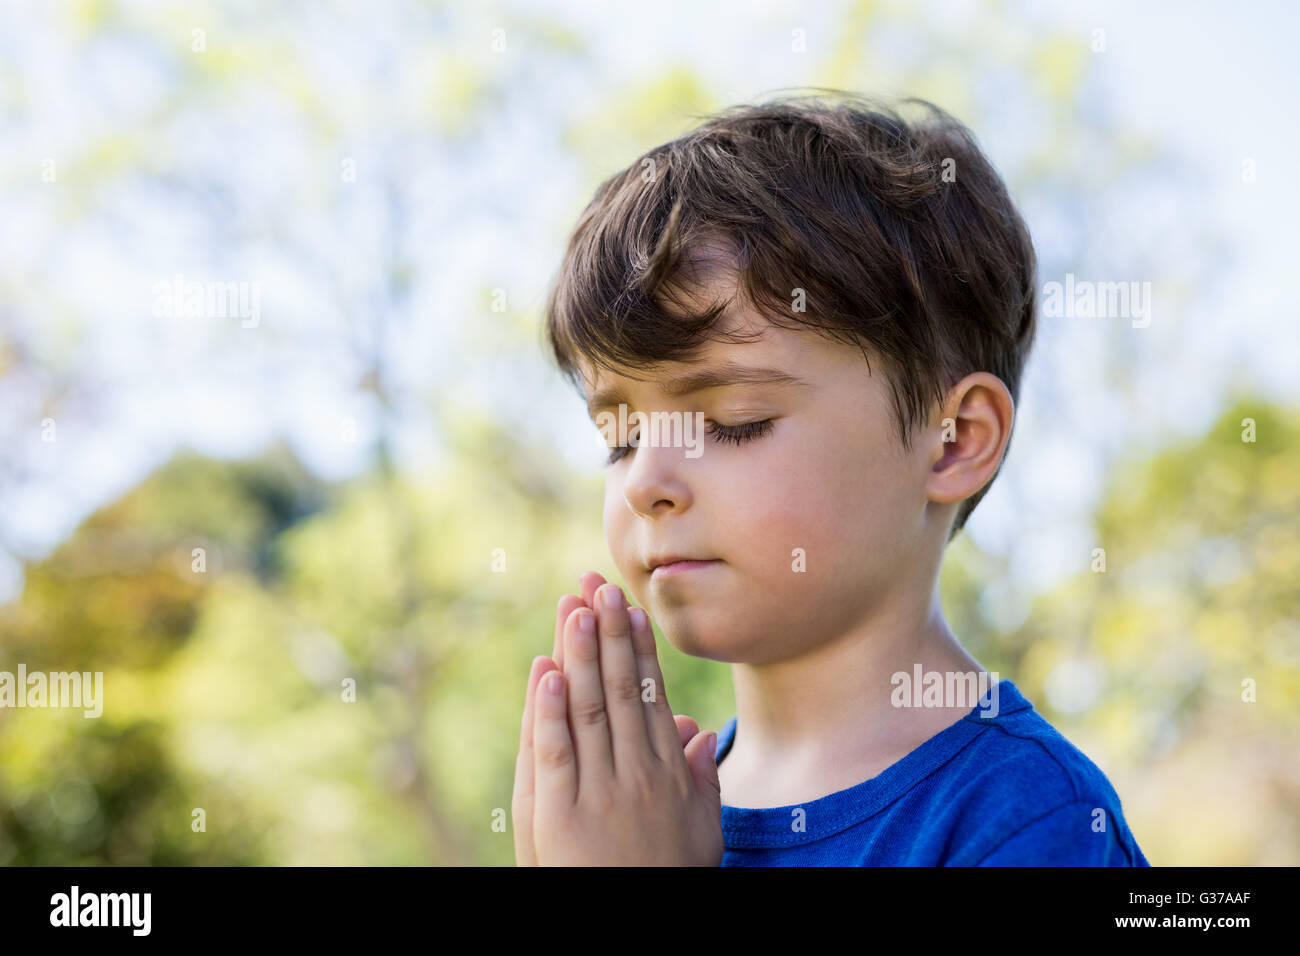 Boy praying with eyes closed - Stock Image